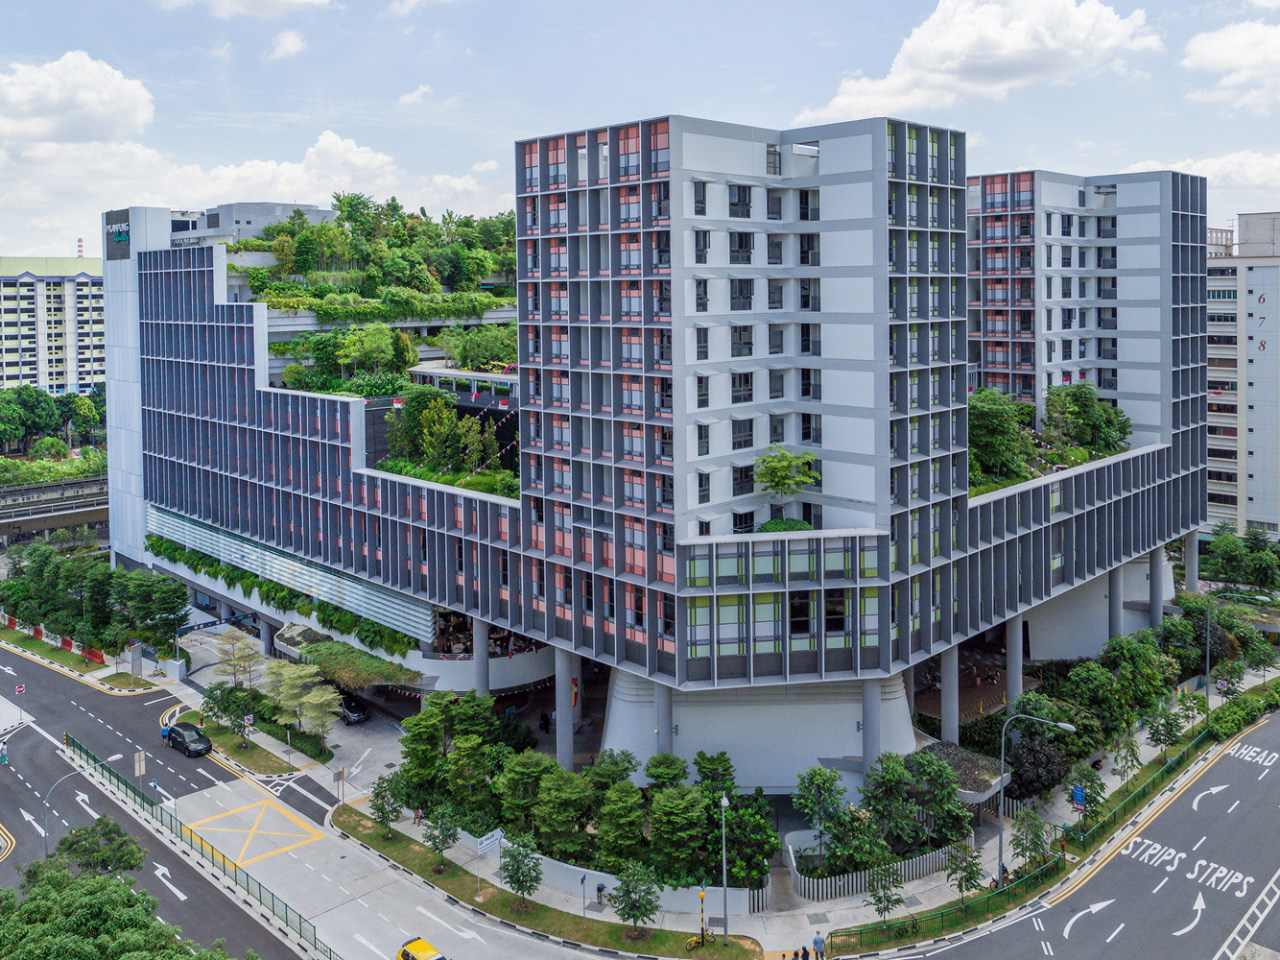 Kampung Admiralty by WOHA – fresh architectural thinking apartment, bird's eye view, building, city, commercial building, condominium, corporate headquarters, elevation, metropolis, metropolitan area, mixed use, neighbourhood, property, real estate, residential area, tower block, urban design, gray